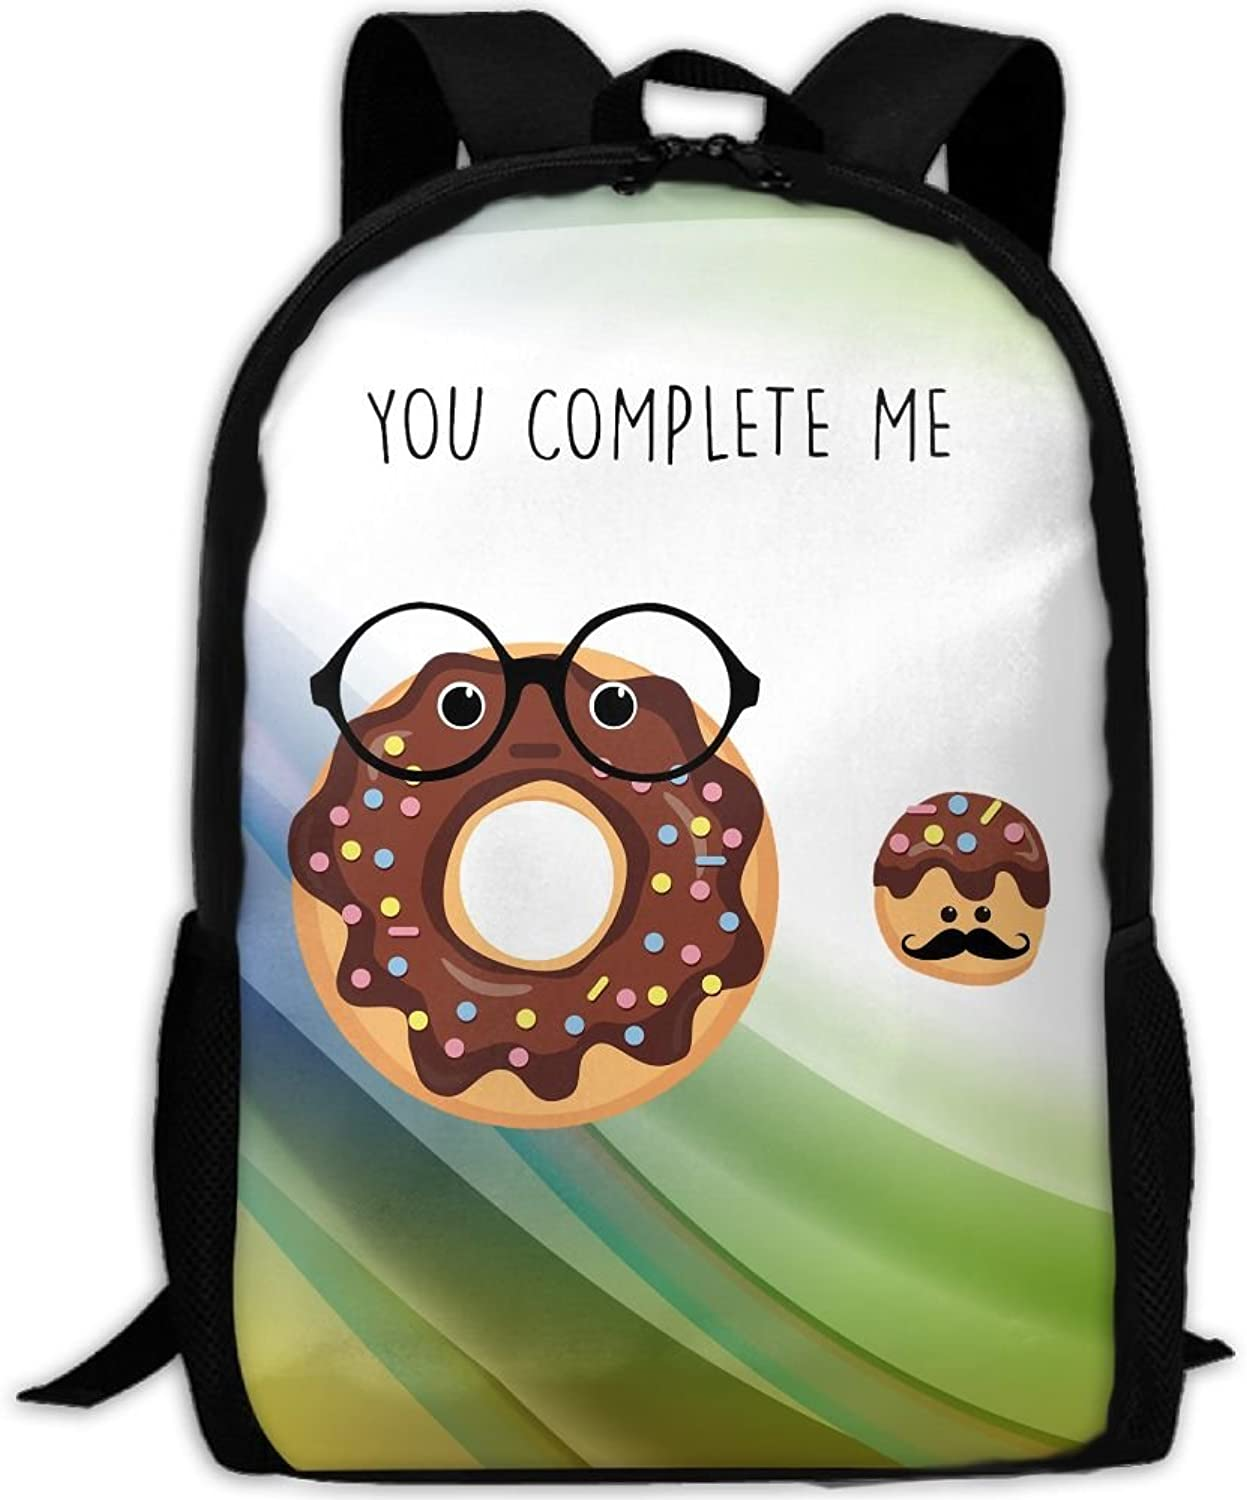 Adult Backpack You Complete Me Chocolate Donut College Daypack Oxford Bag Unisex Business Travel Sports Bag with Adjustable Strap